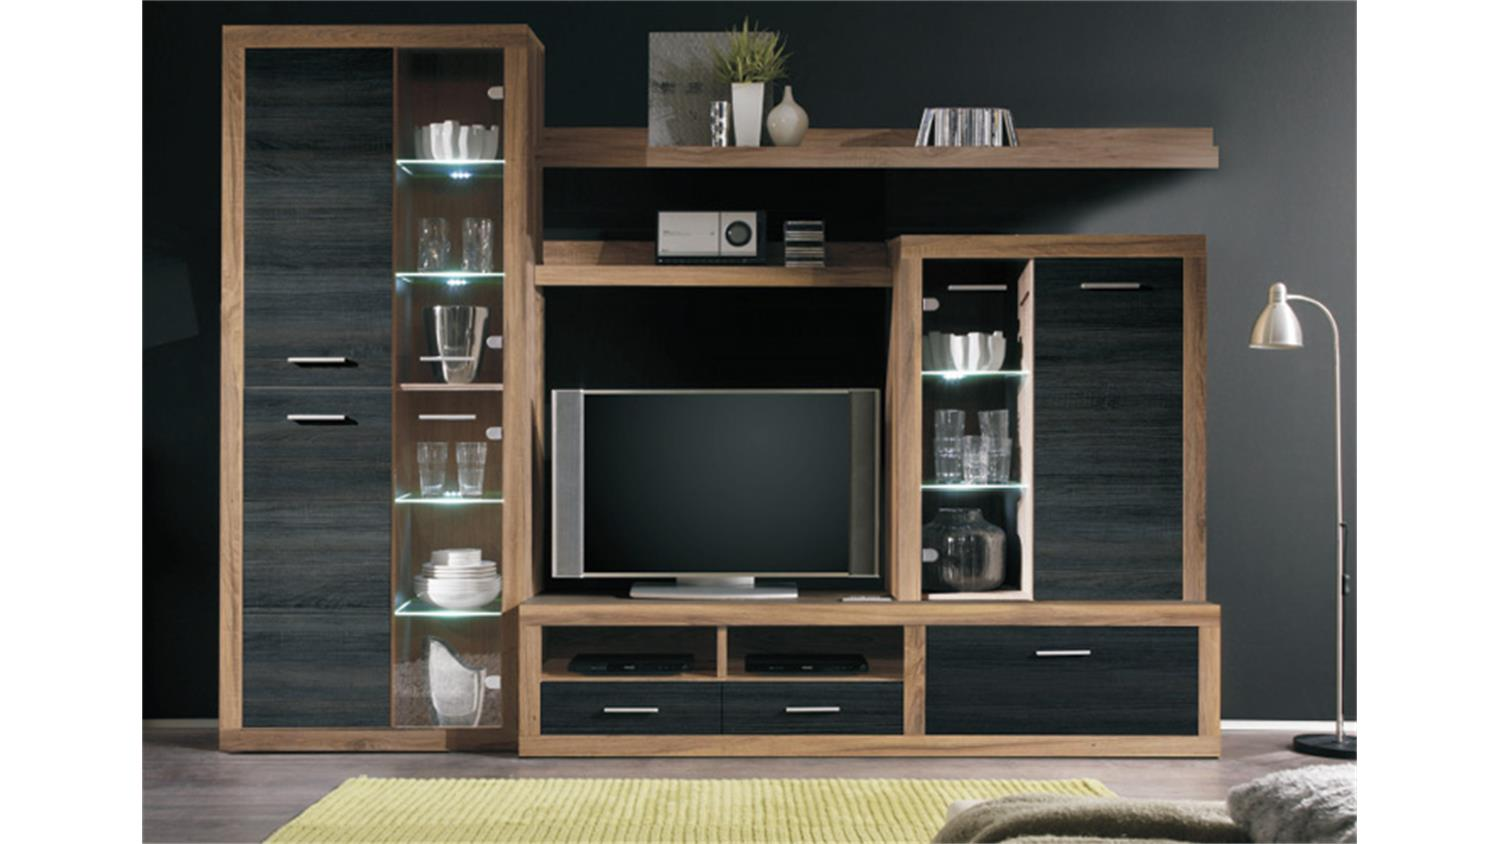 wohnwand mit steintapete interessante ideen f r die gestaltung eines raumes in. Black Bedroom Furniture Sets. Home Design Ideas